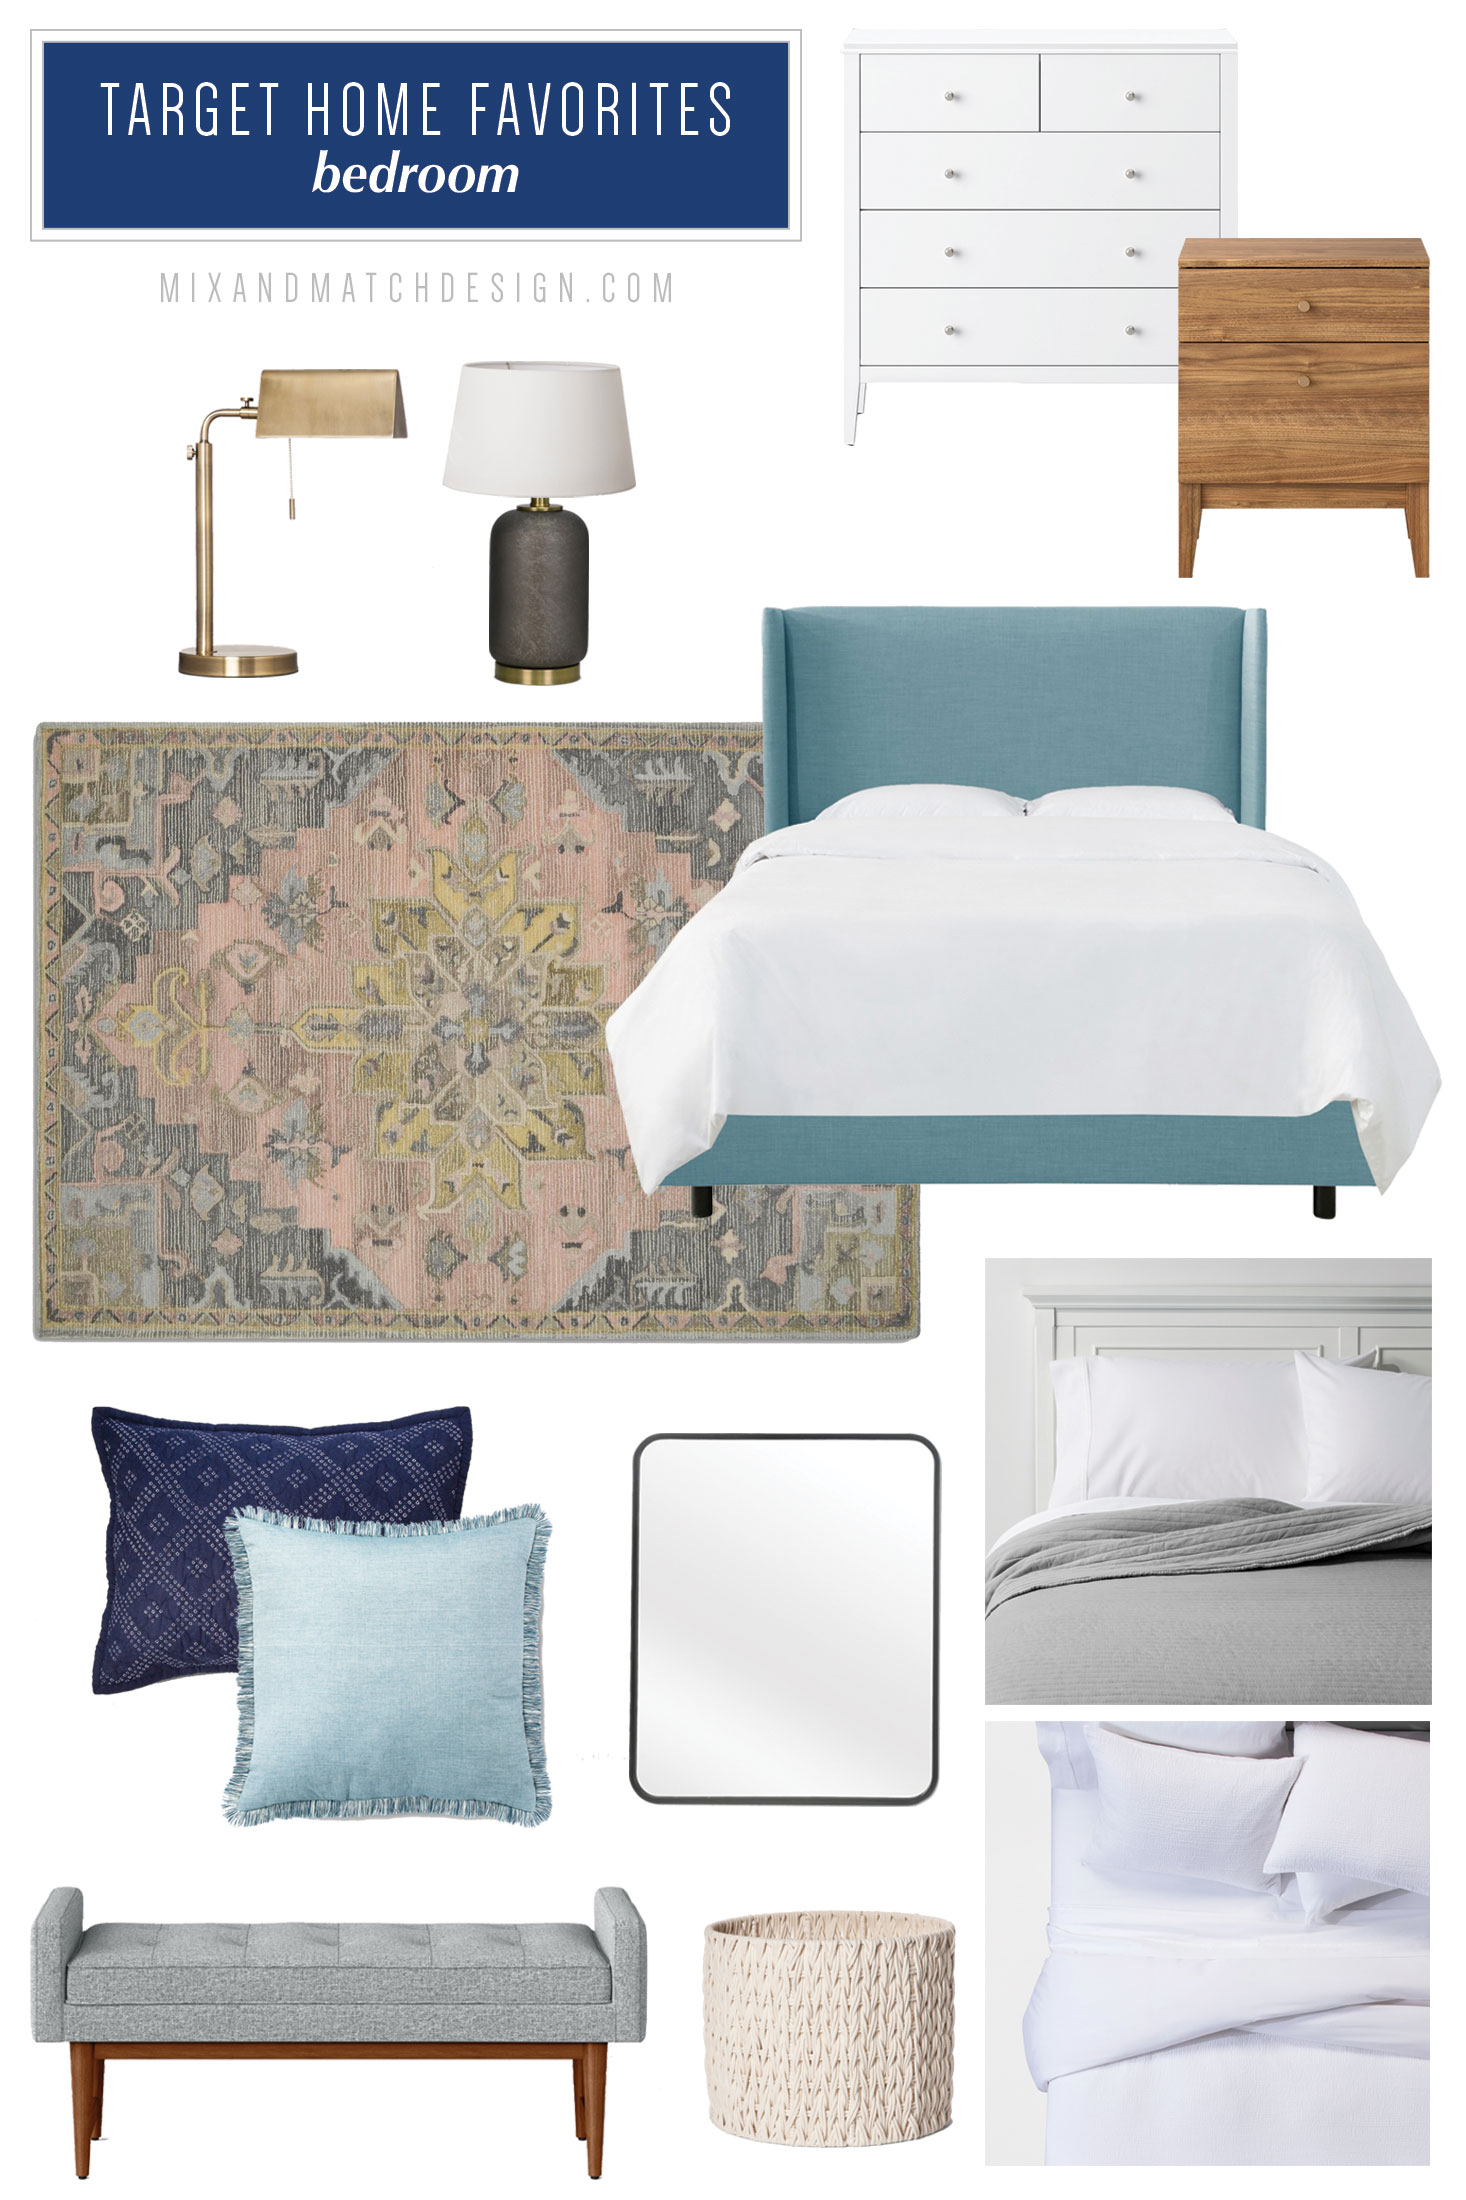 A roundup of the furniture and decor that caught my eye recently at Target. If you're looking for recommendations for affordable items for your bedroom, be sure to check out this blog post with finds from Target brands Threshold, Project62, and Opalhouse.